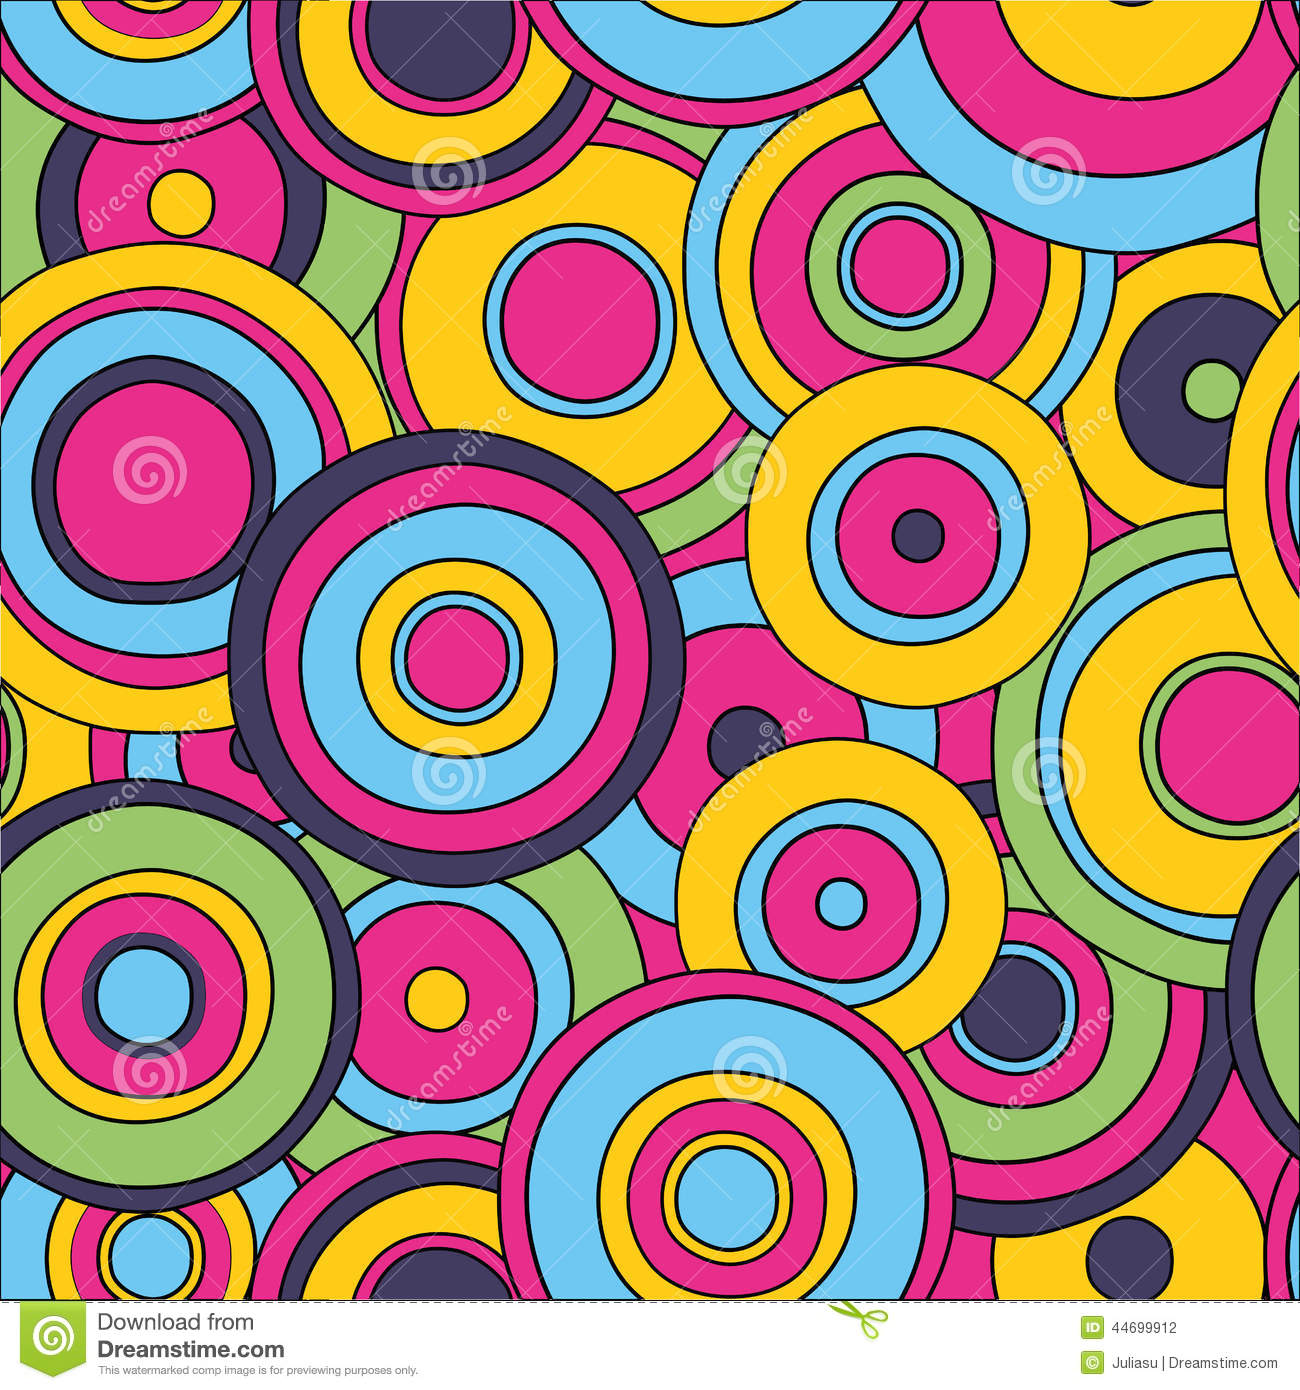 Cool Patterns And Designs For Backgrounds Ainove  Border